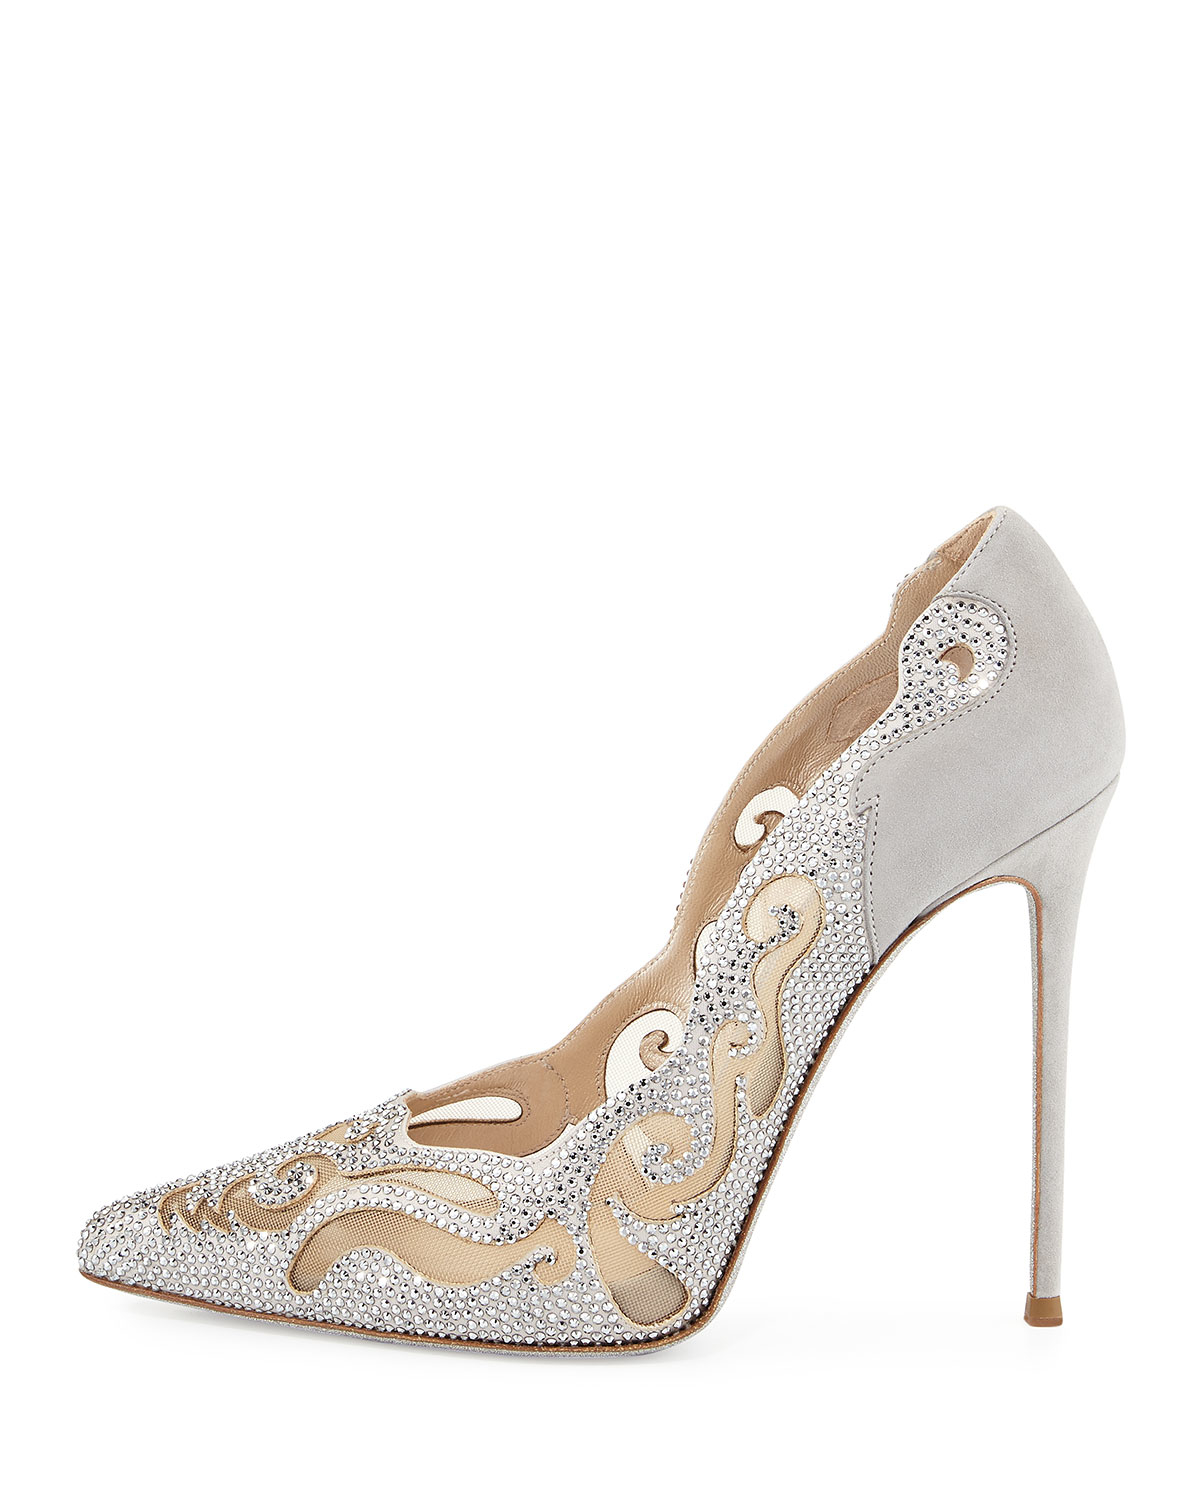 Snake Crystal-embellished Satin Pumps - Neutral Rene Caovilla